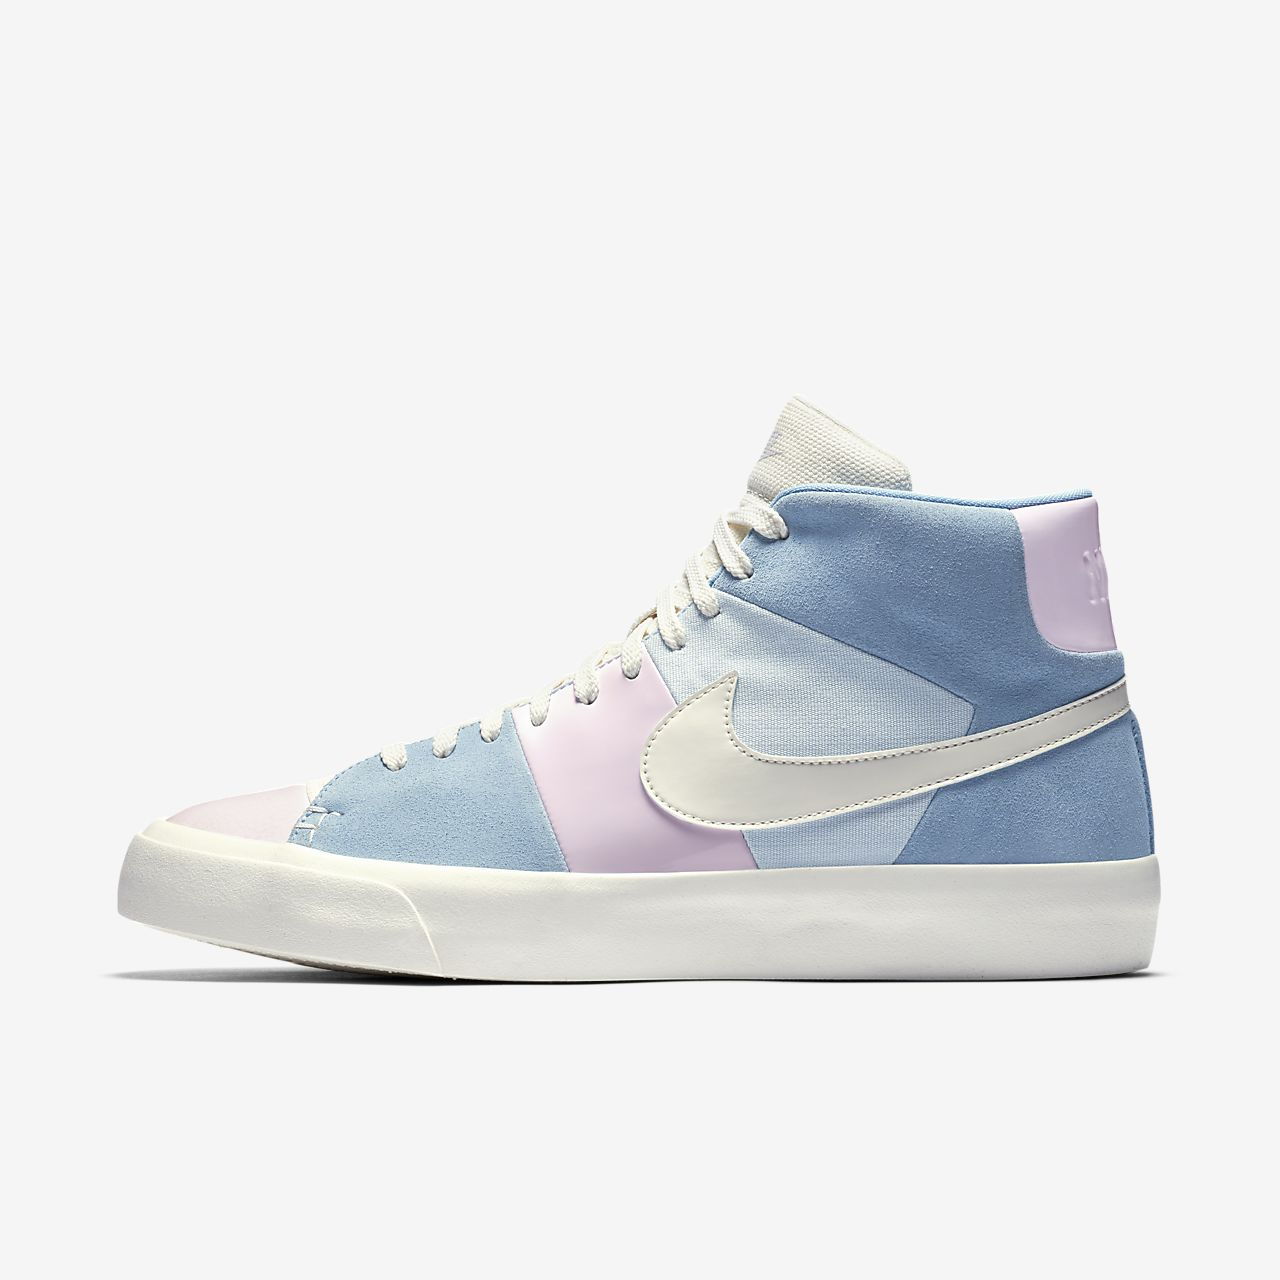 official photos b14a7 c9afe ... Chaussure Nike Blazer Royal Easter QS pour Homme